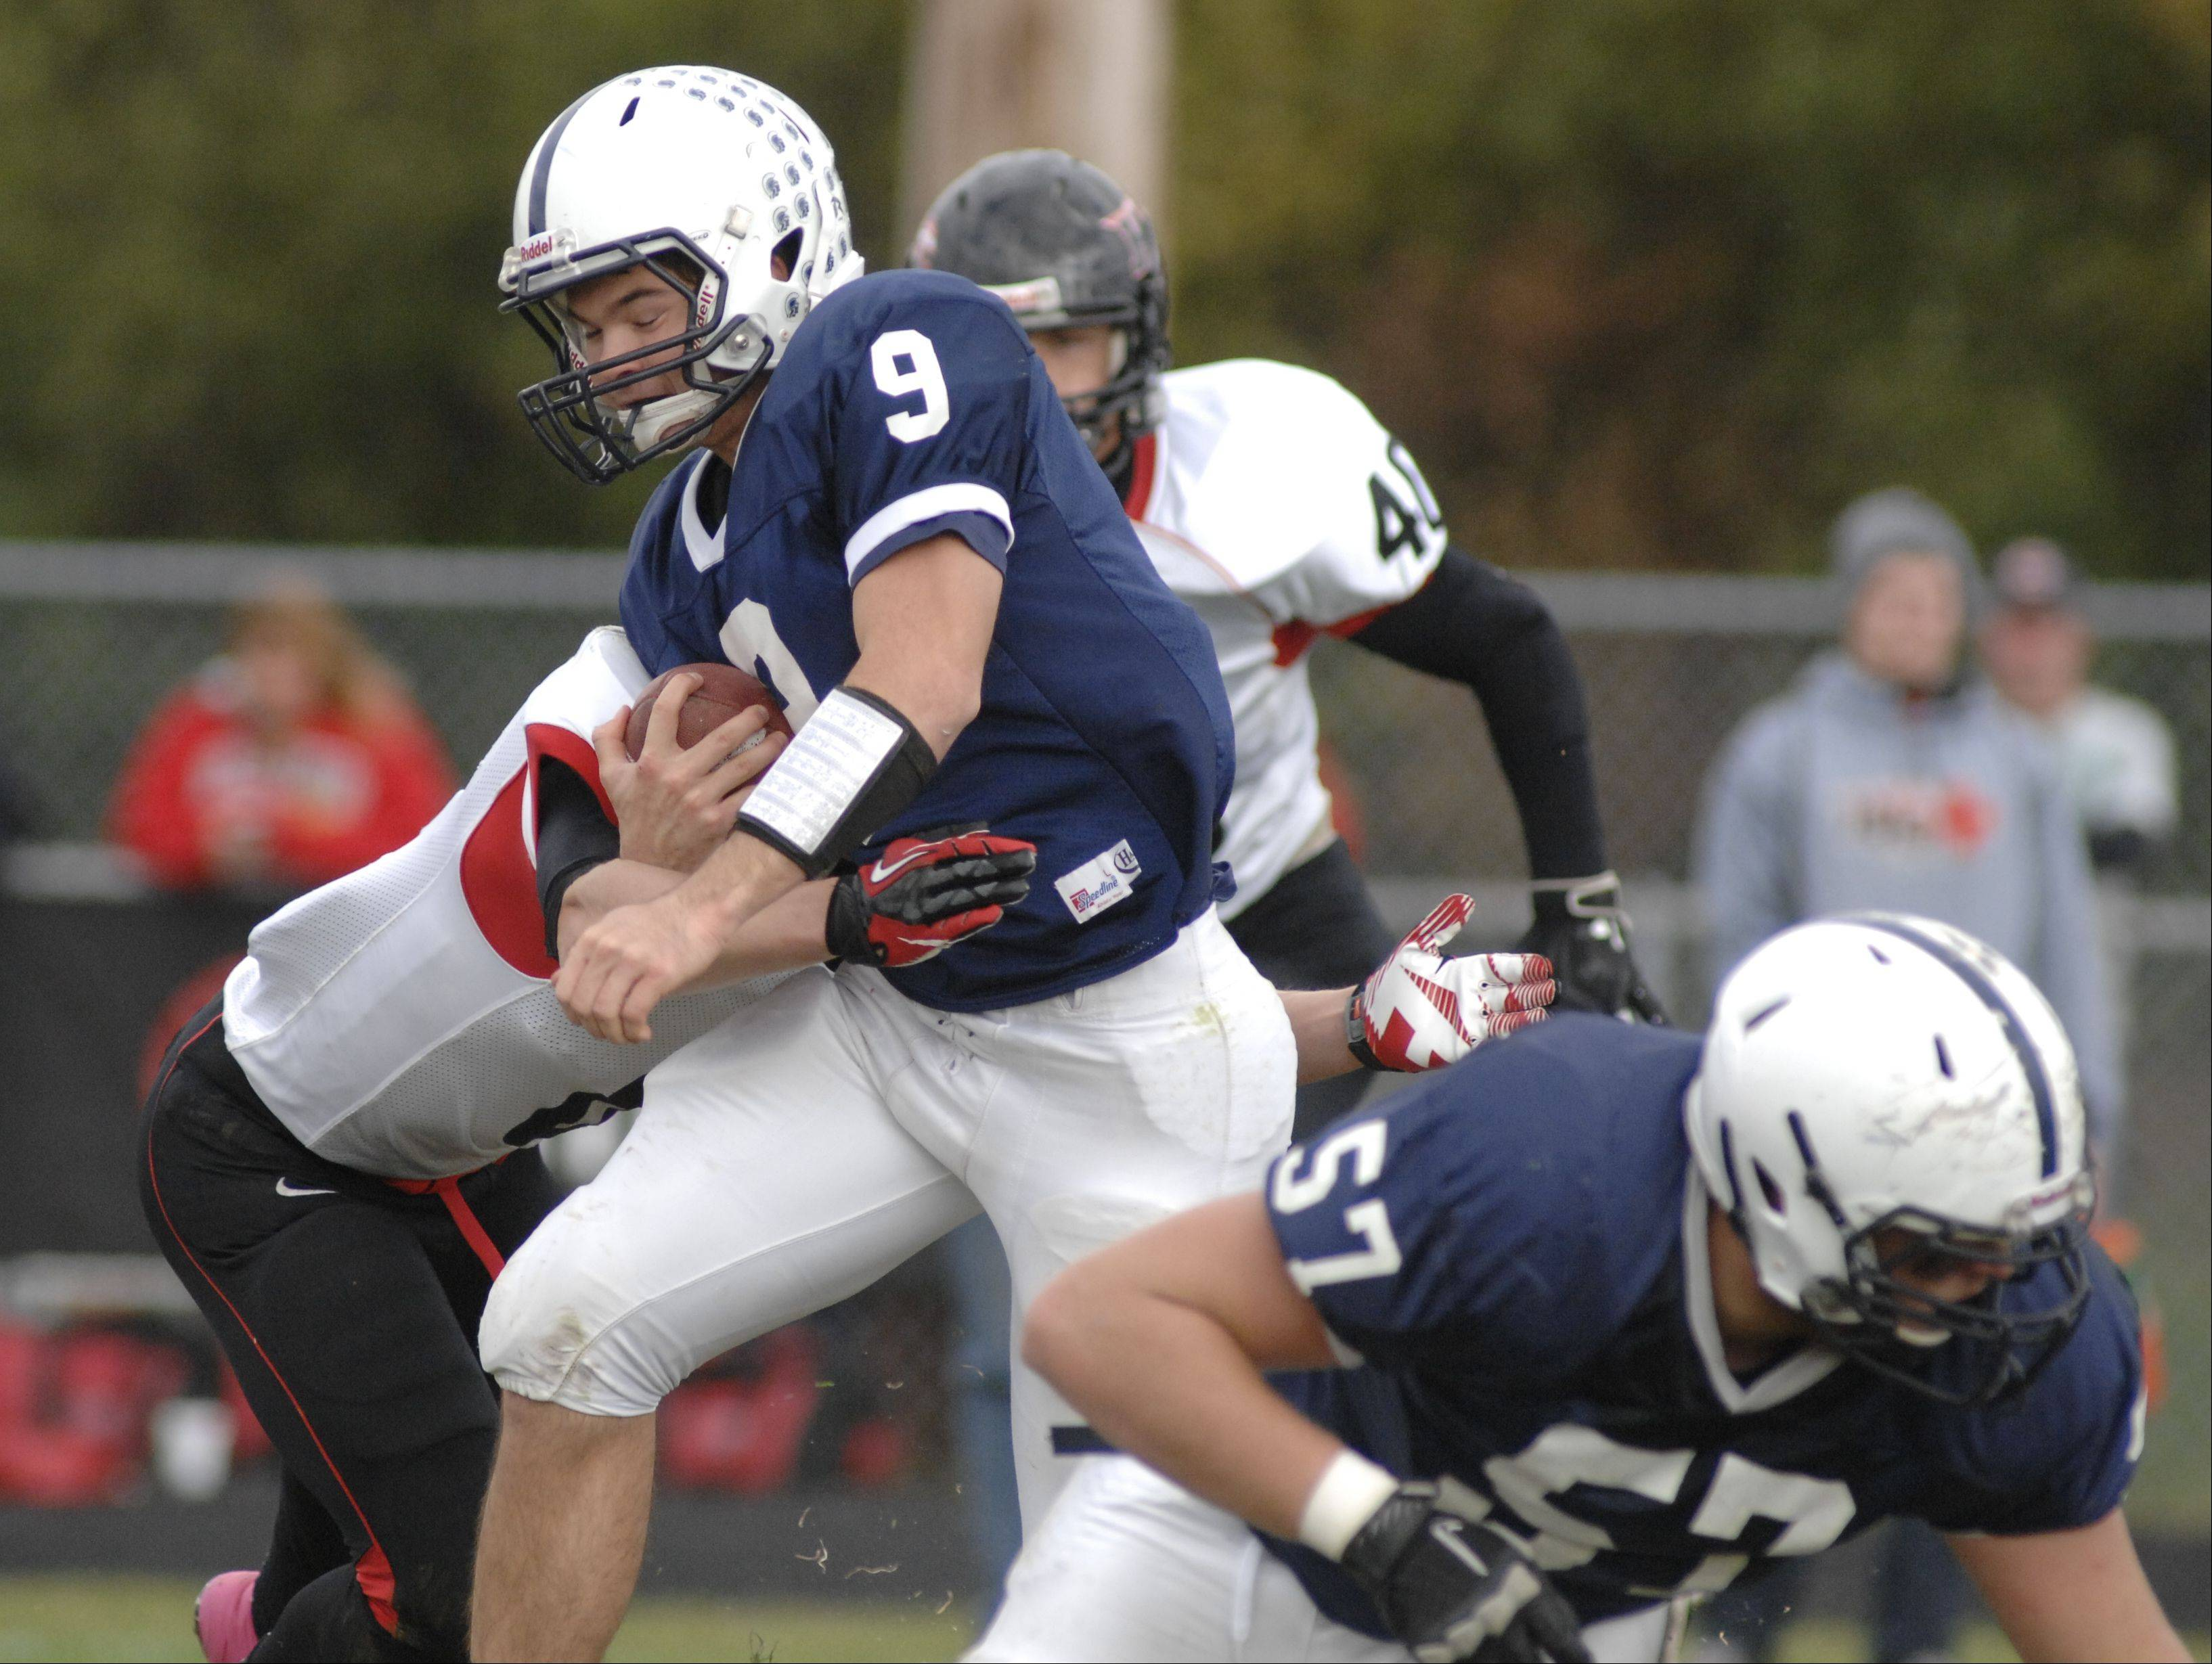 Senior quarterback Quinn Baker (9) has been one of the leaders of the 7-0 Cary-Grove football team this season.